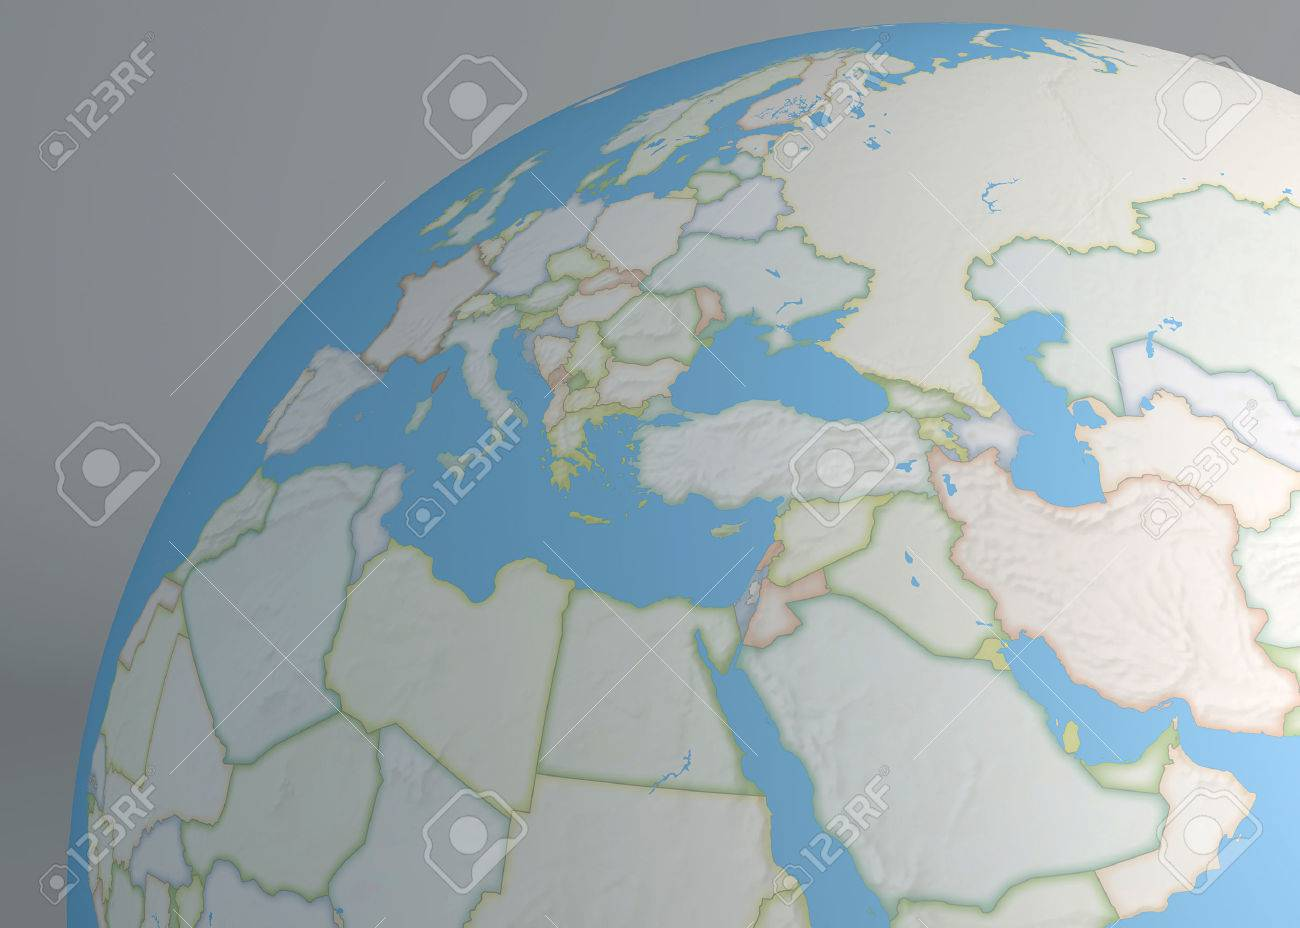 Planisphere Map Globe Middle East Europe Africa And Asia Stock